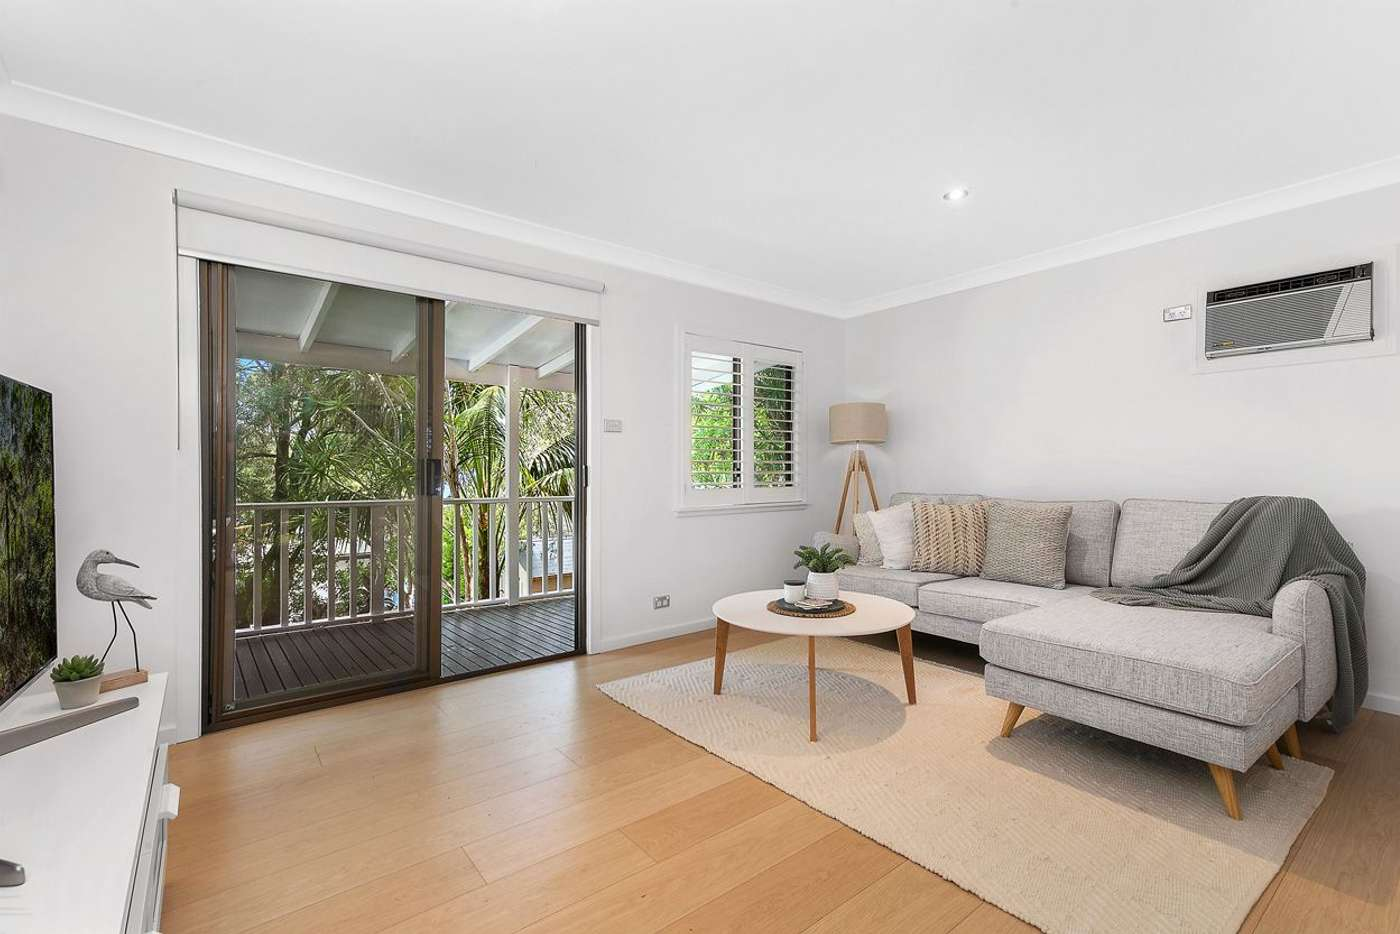 Sixth view of Homely house listing, 79a Campbell Parade, Manly Vale NSW 2093